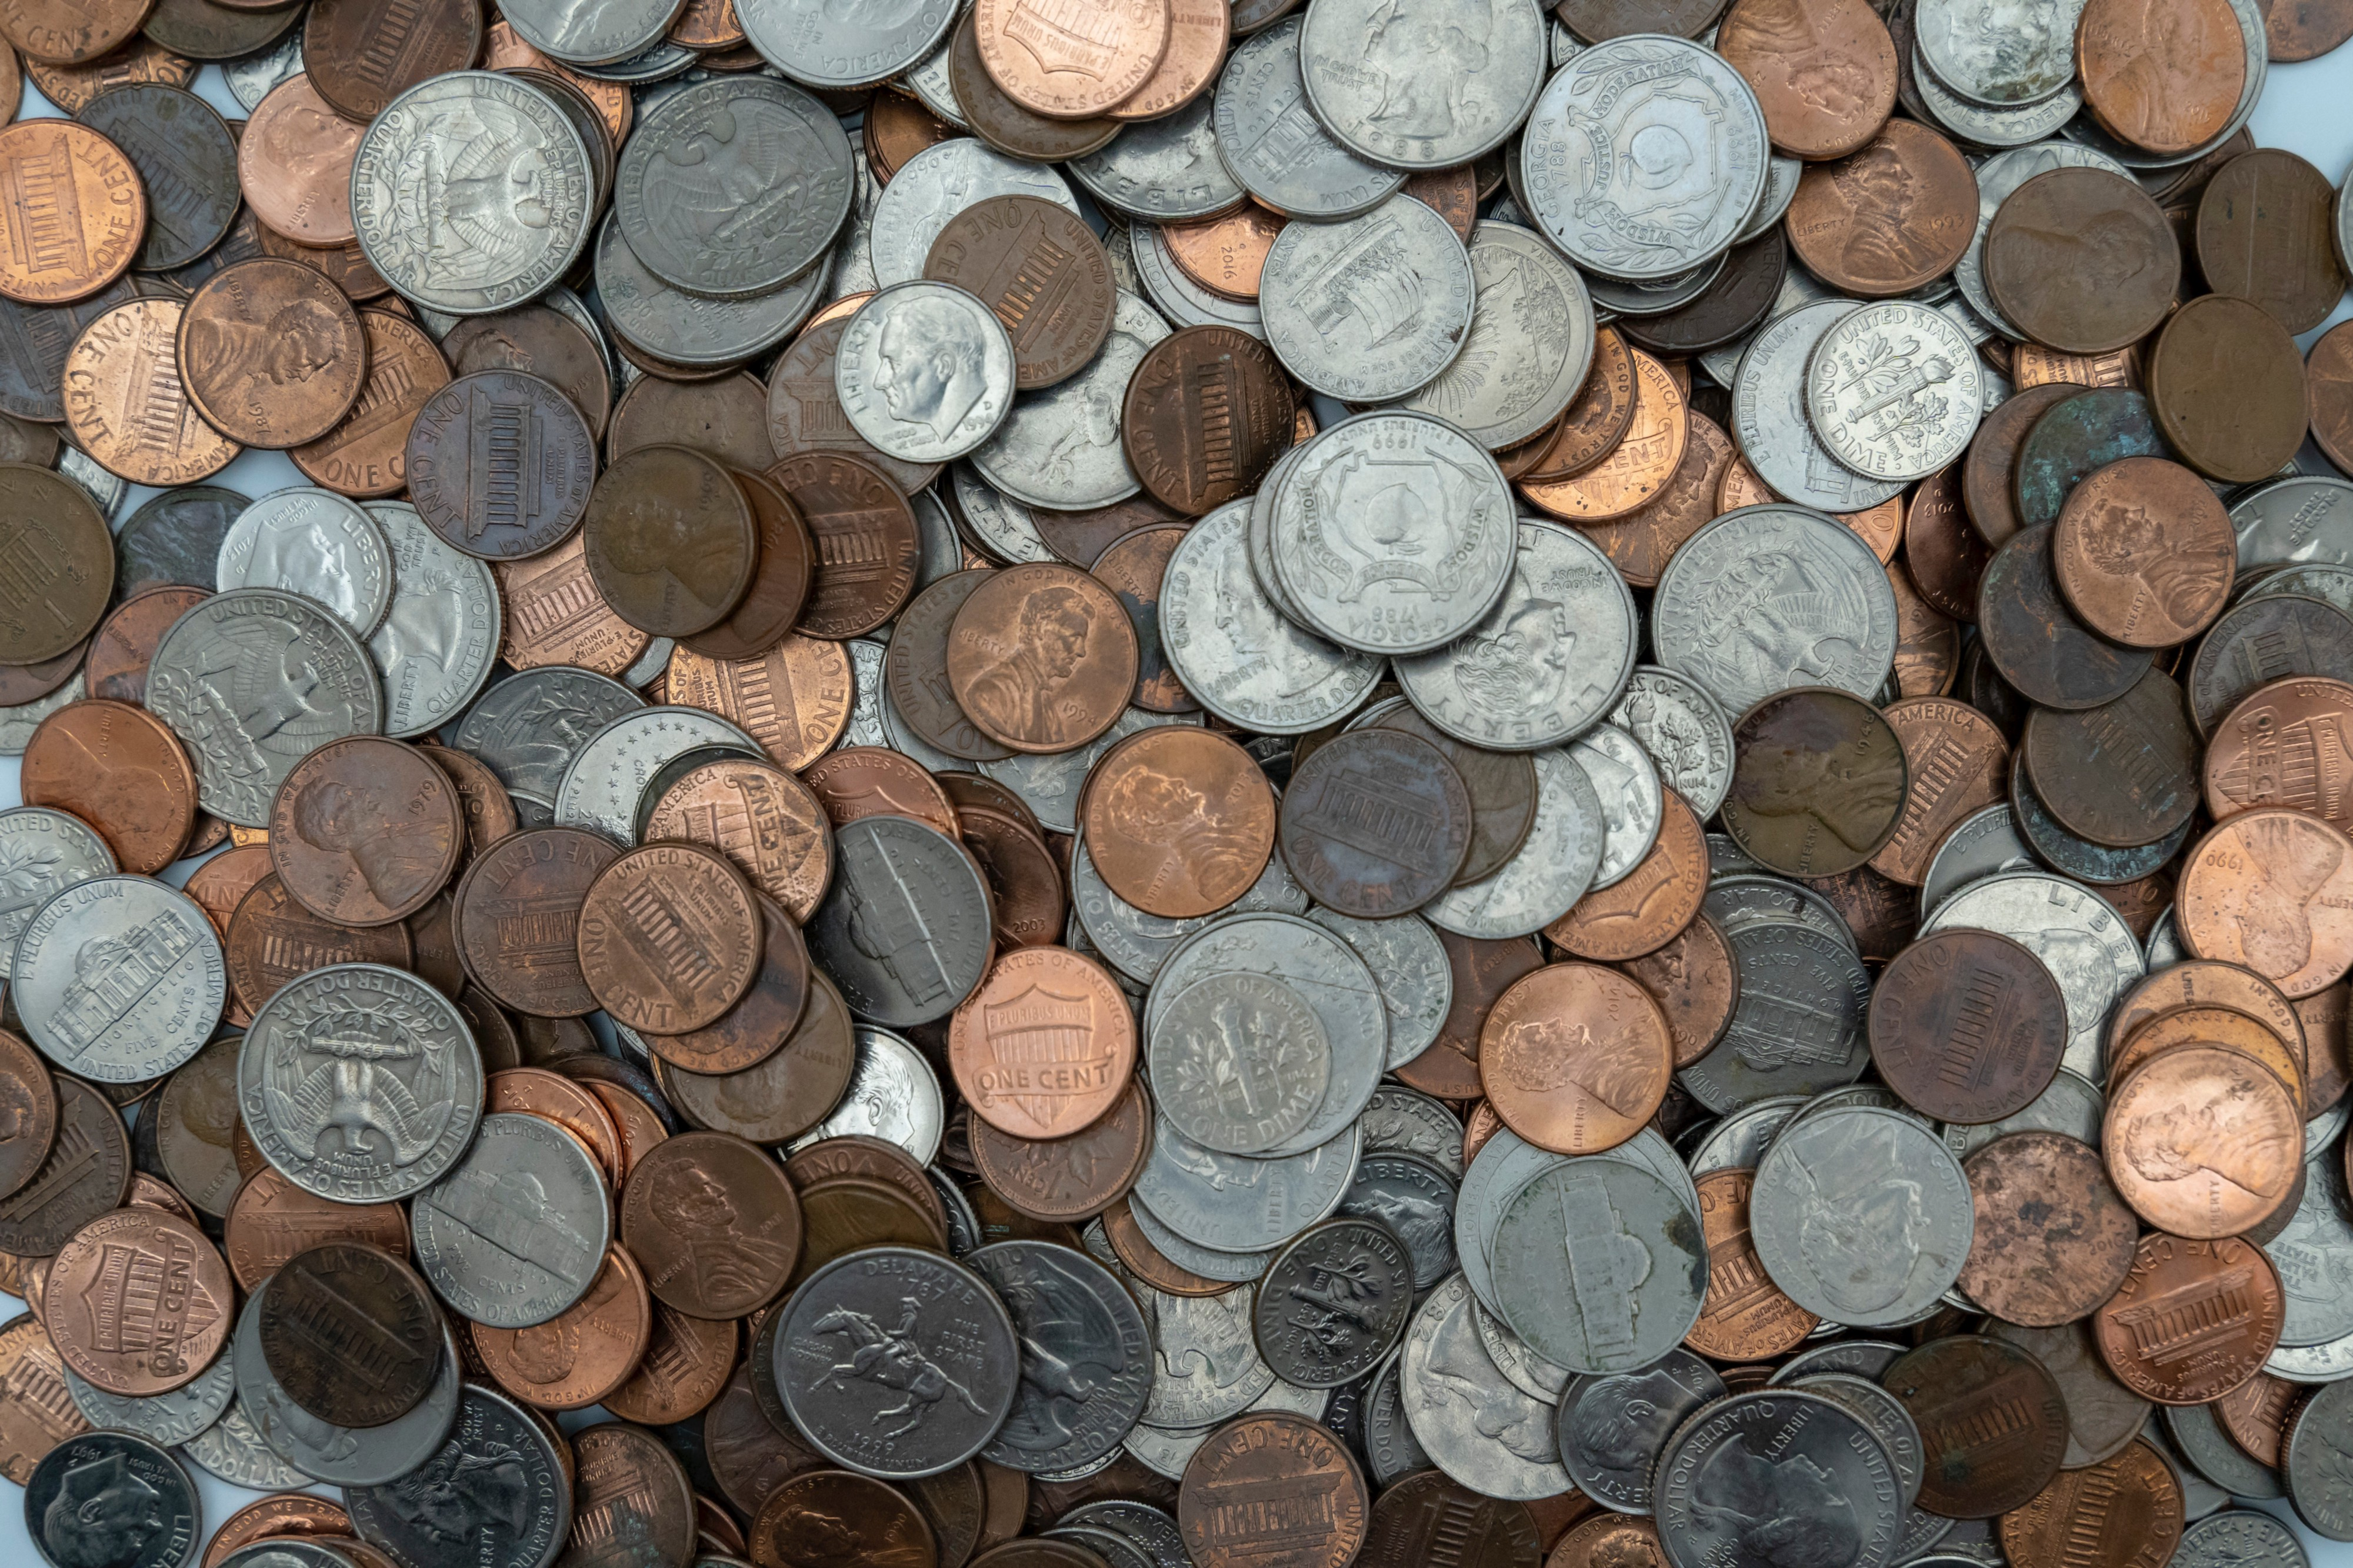 An assortment of coins spread out on a flat surface. Possibly a table.